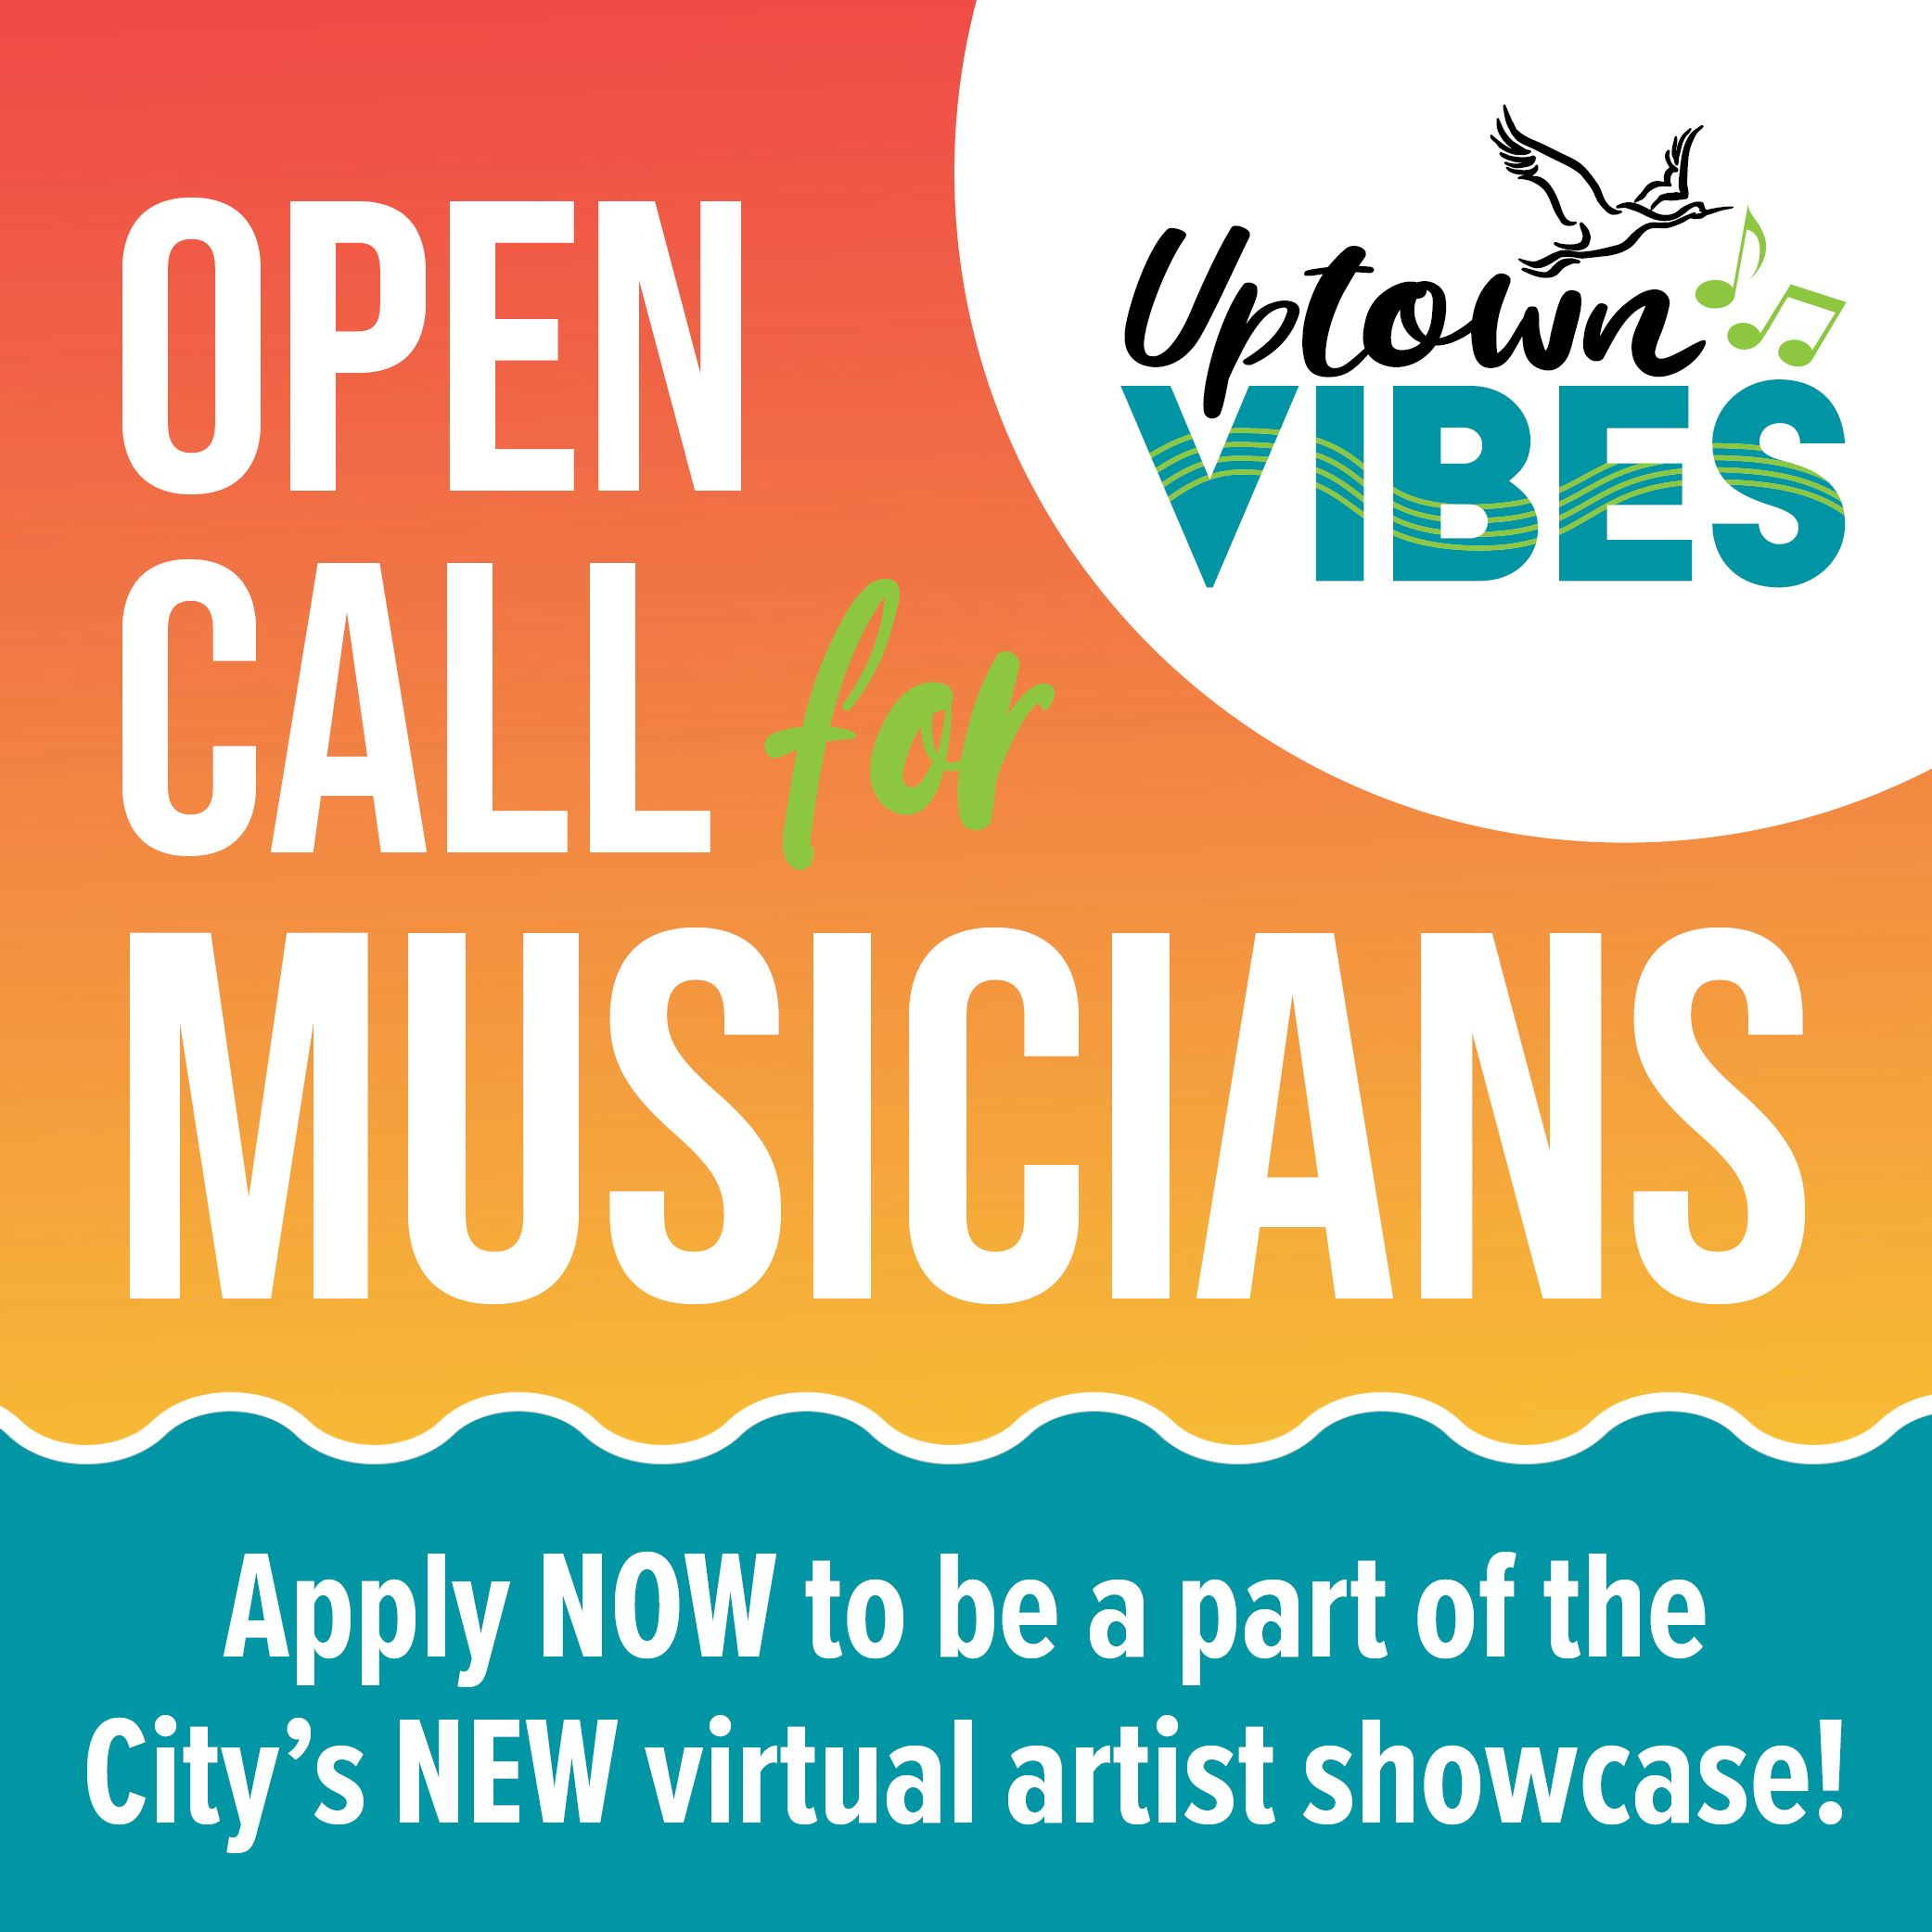 Uptown Vibes Open Call for Musicians